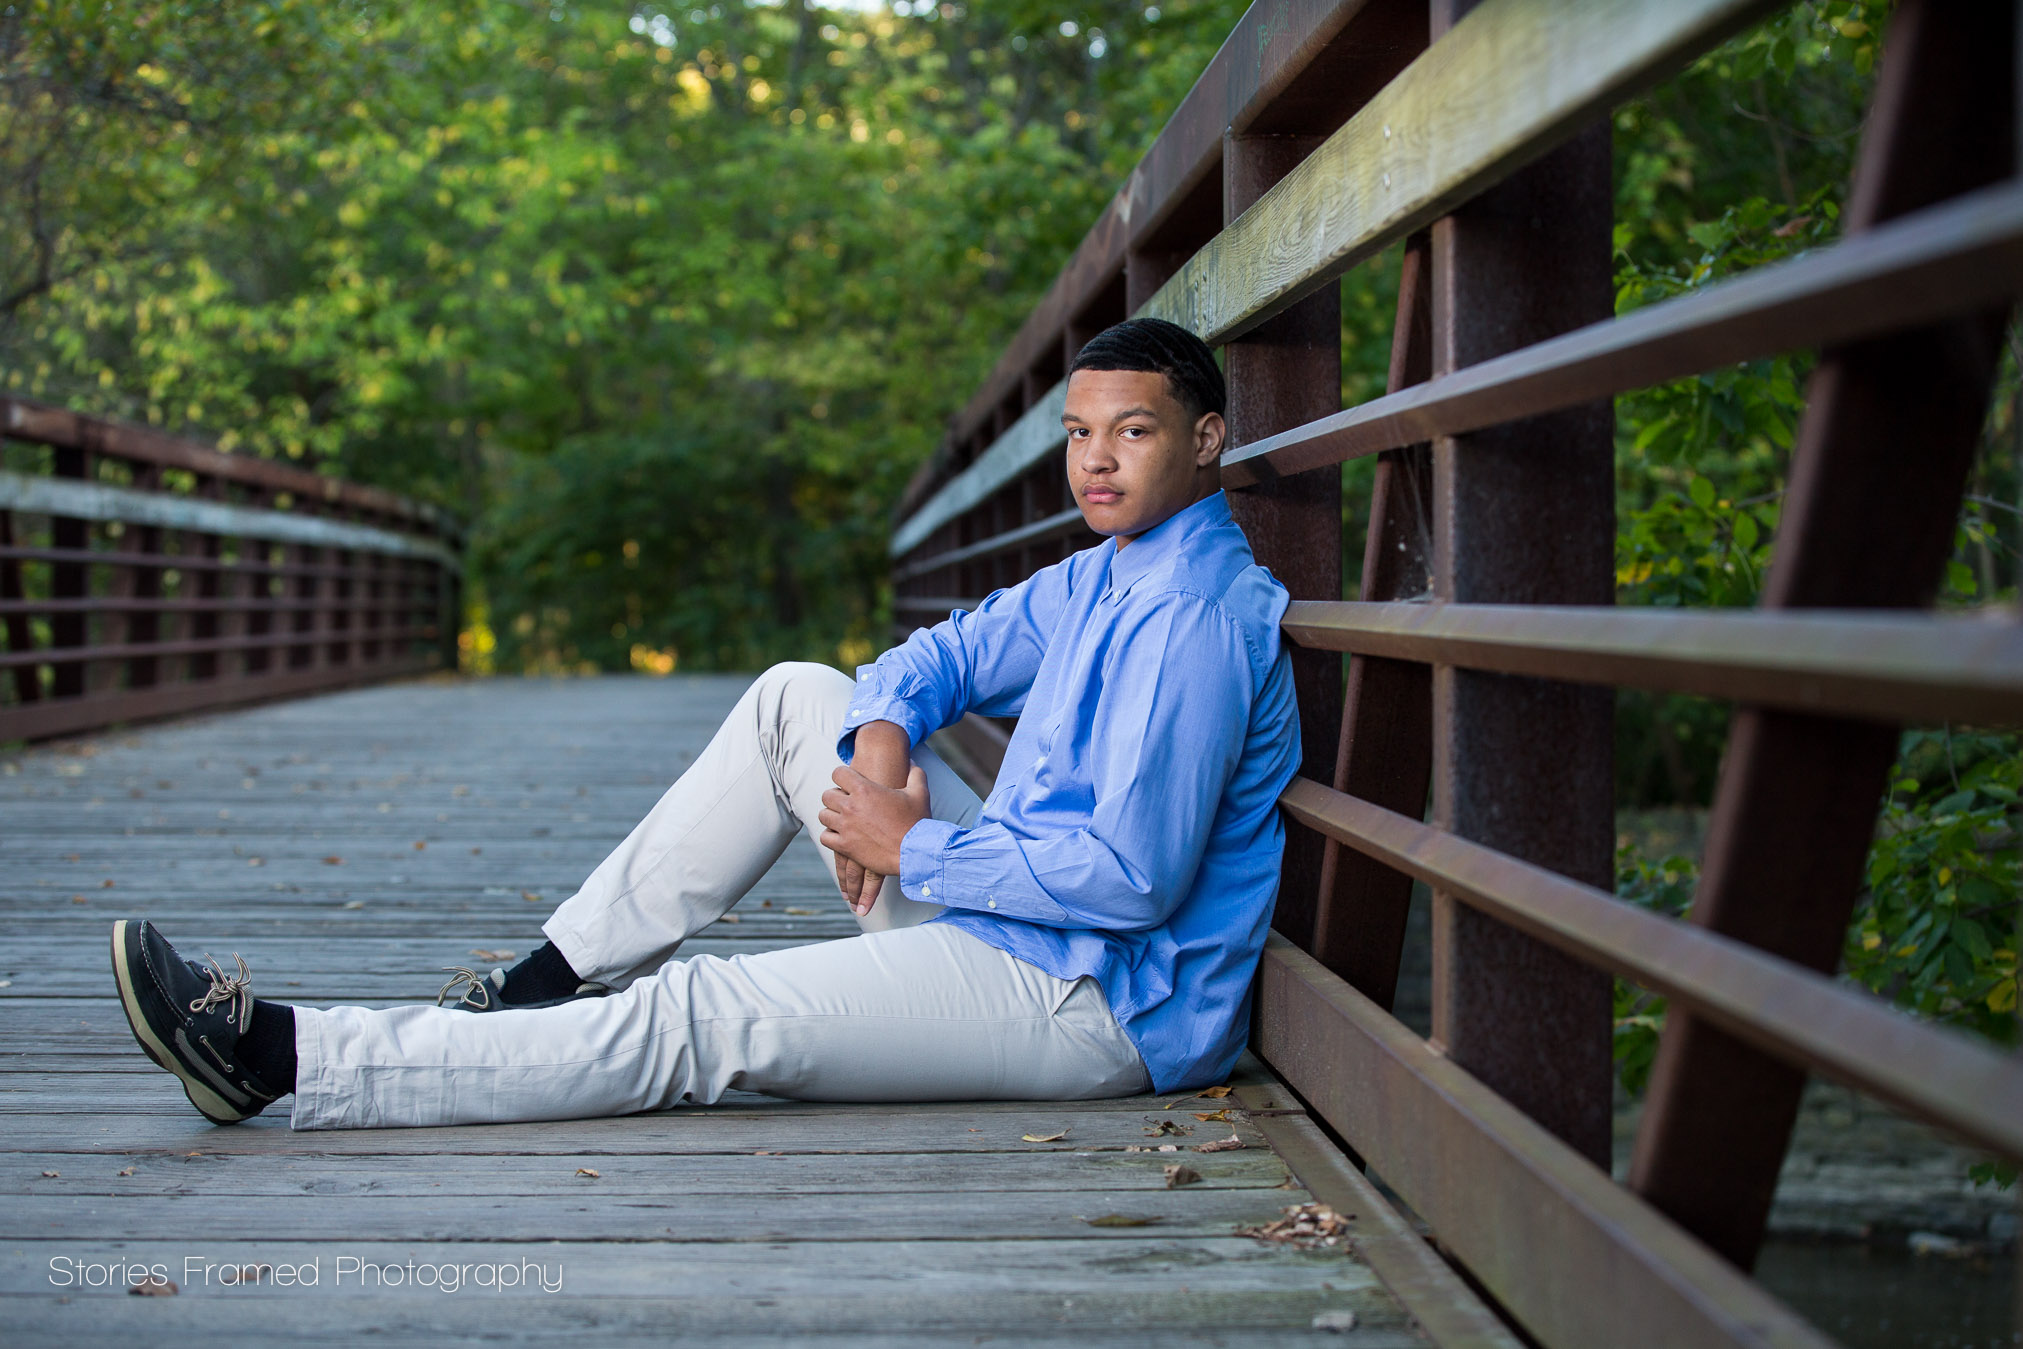 Wauwatosa West senior in the park